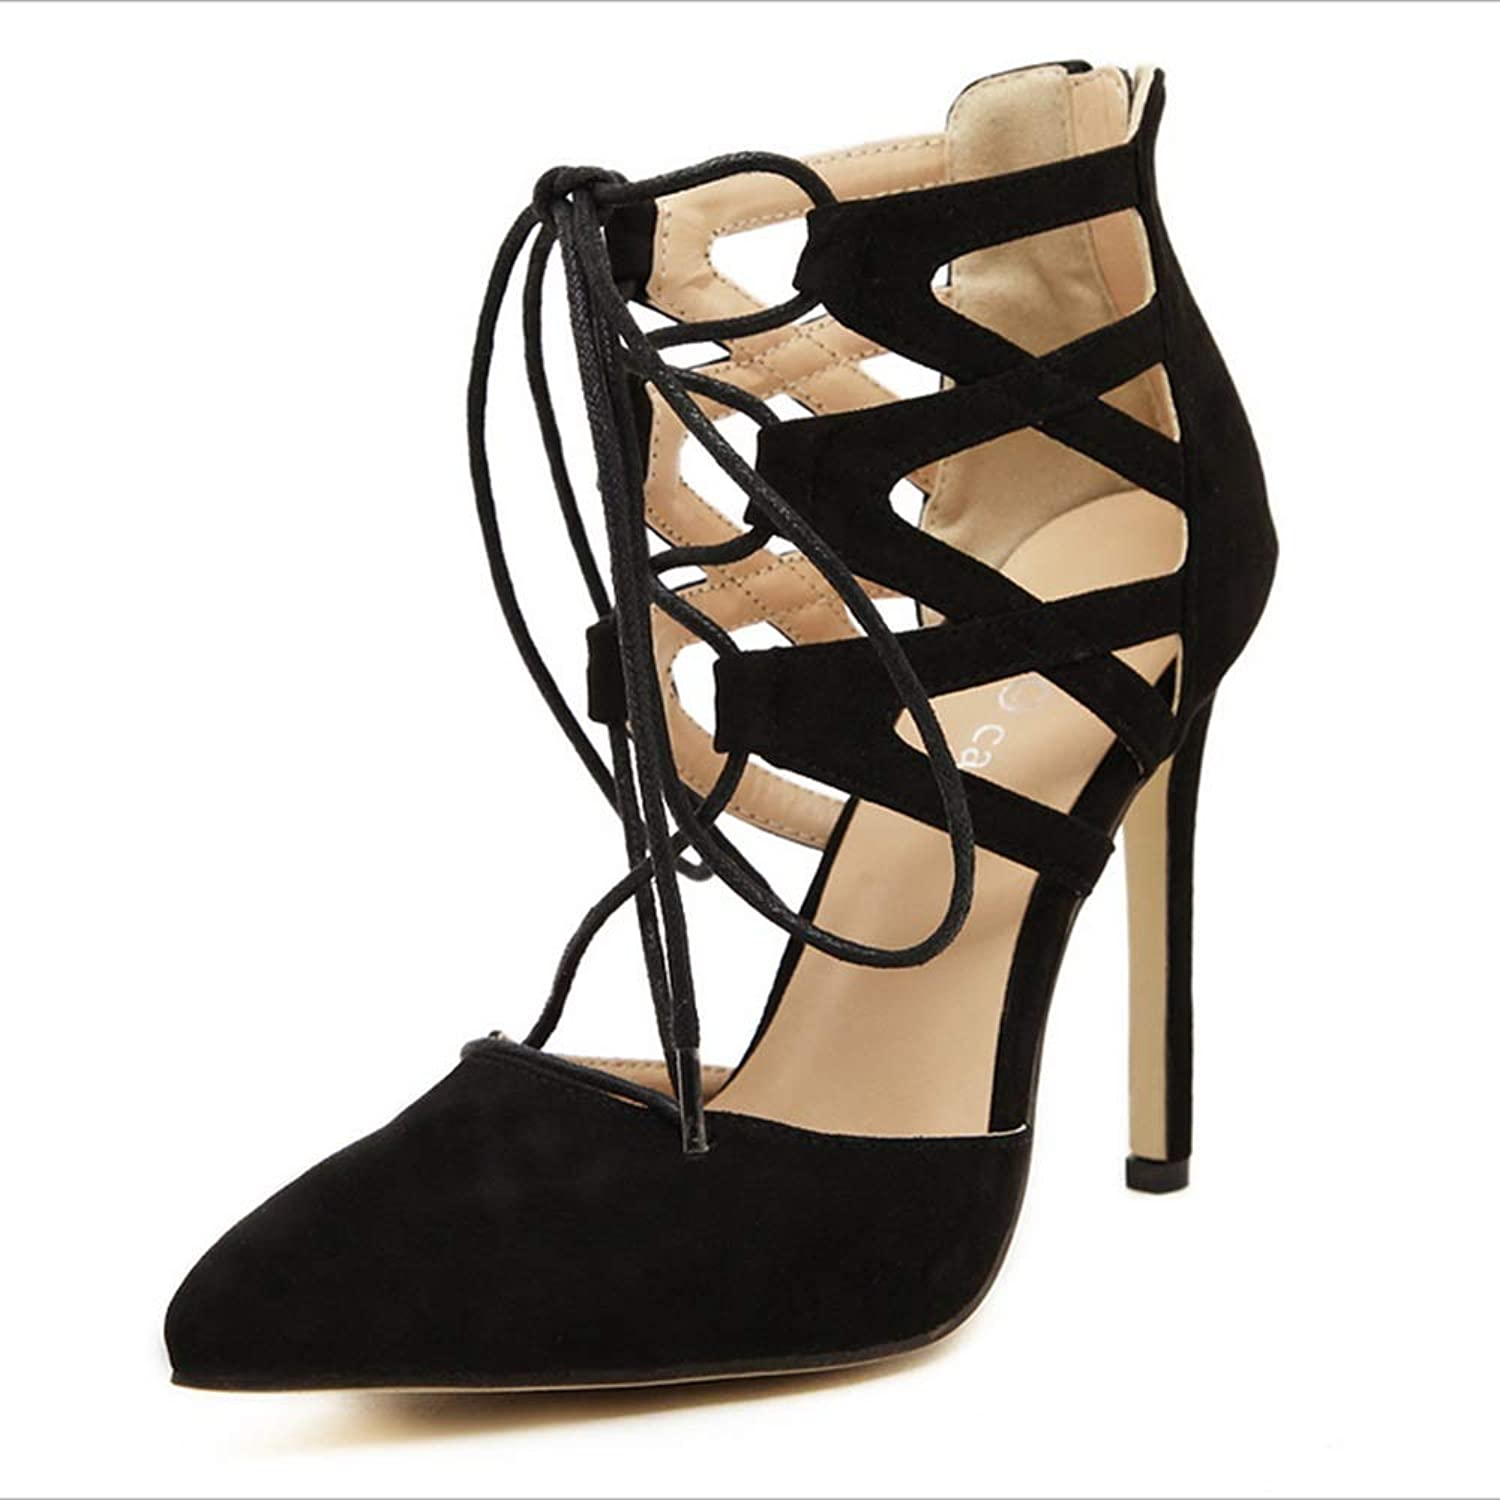 Bvilage  Hollow Strappy High-Heeled Sandals Women's Open Toe High Heeled